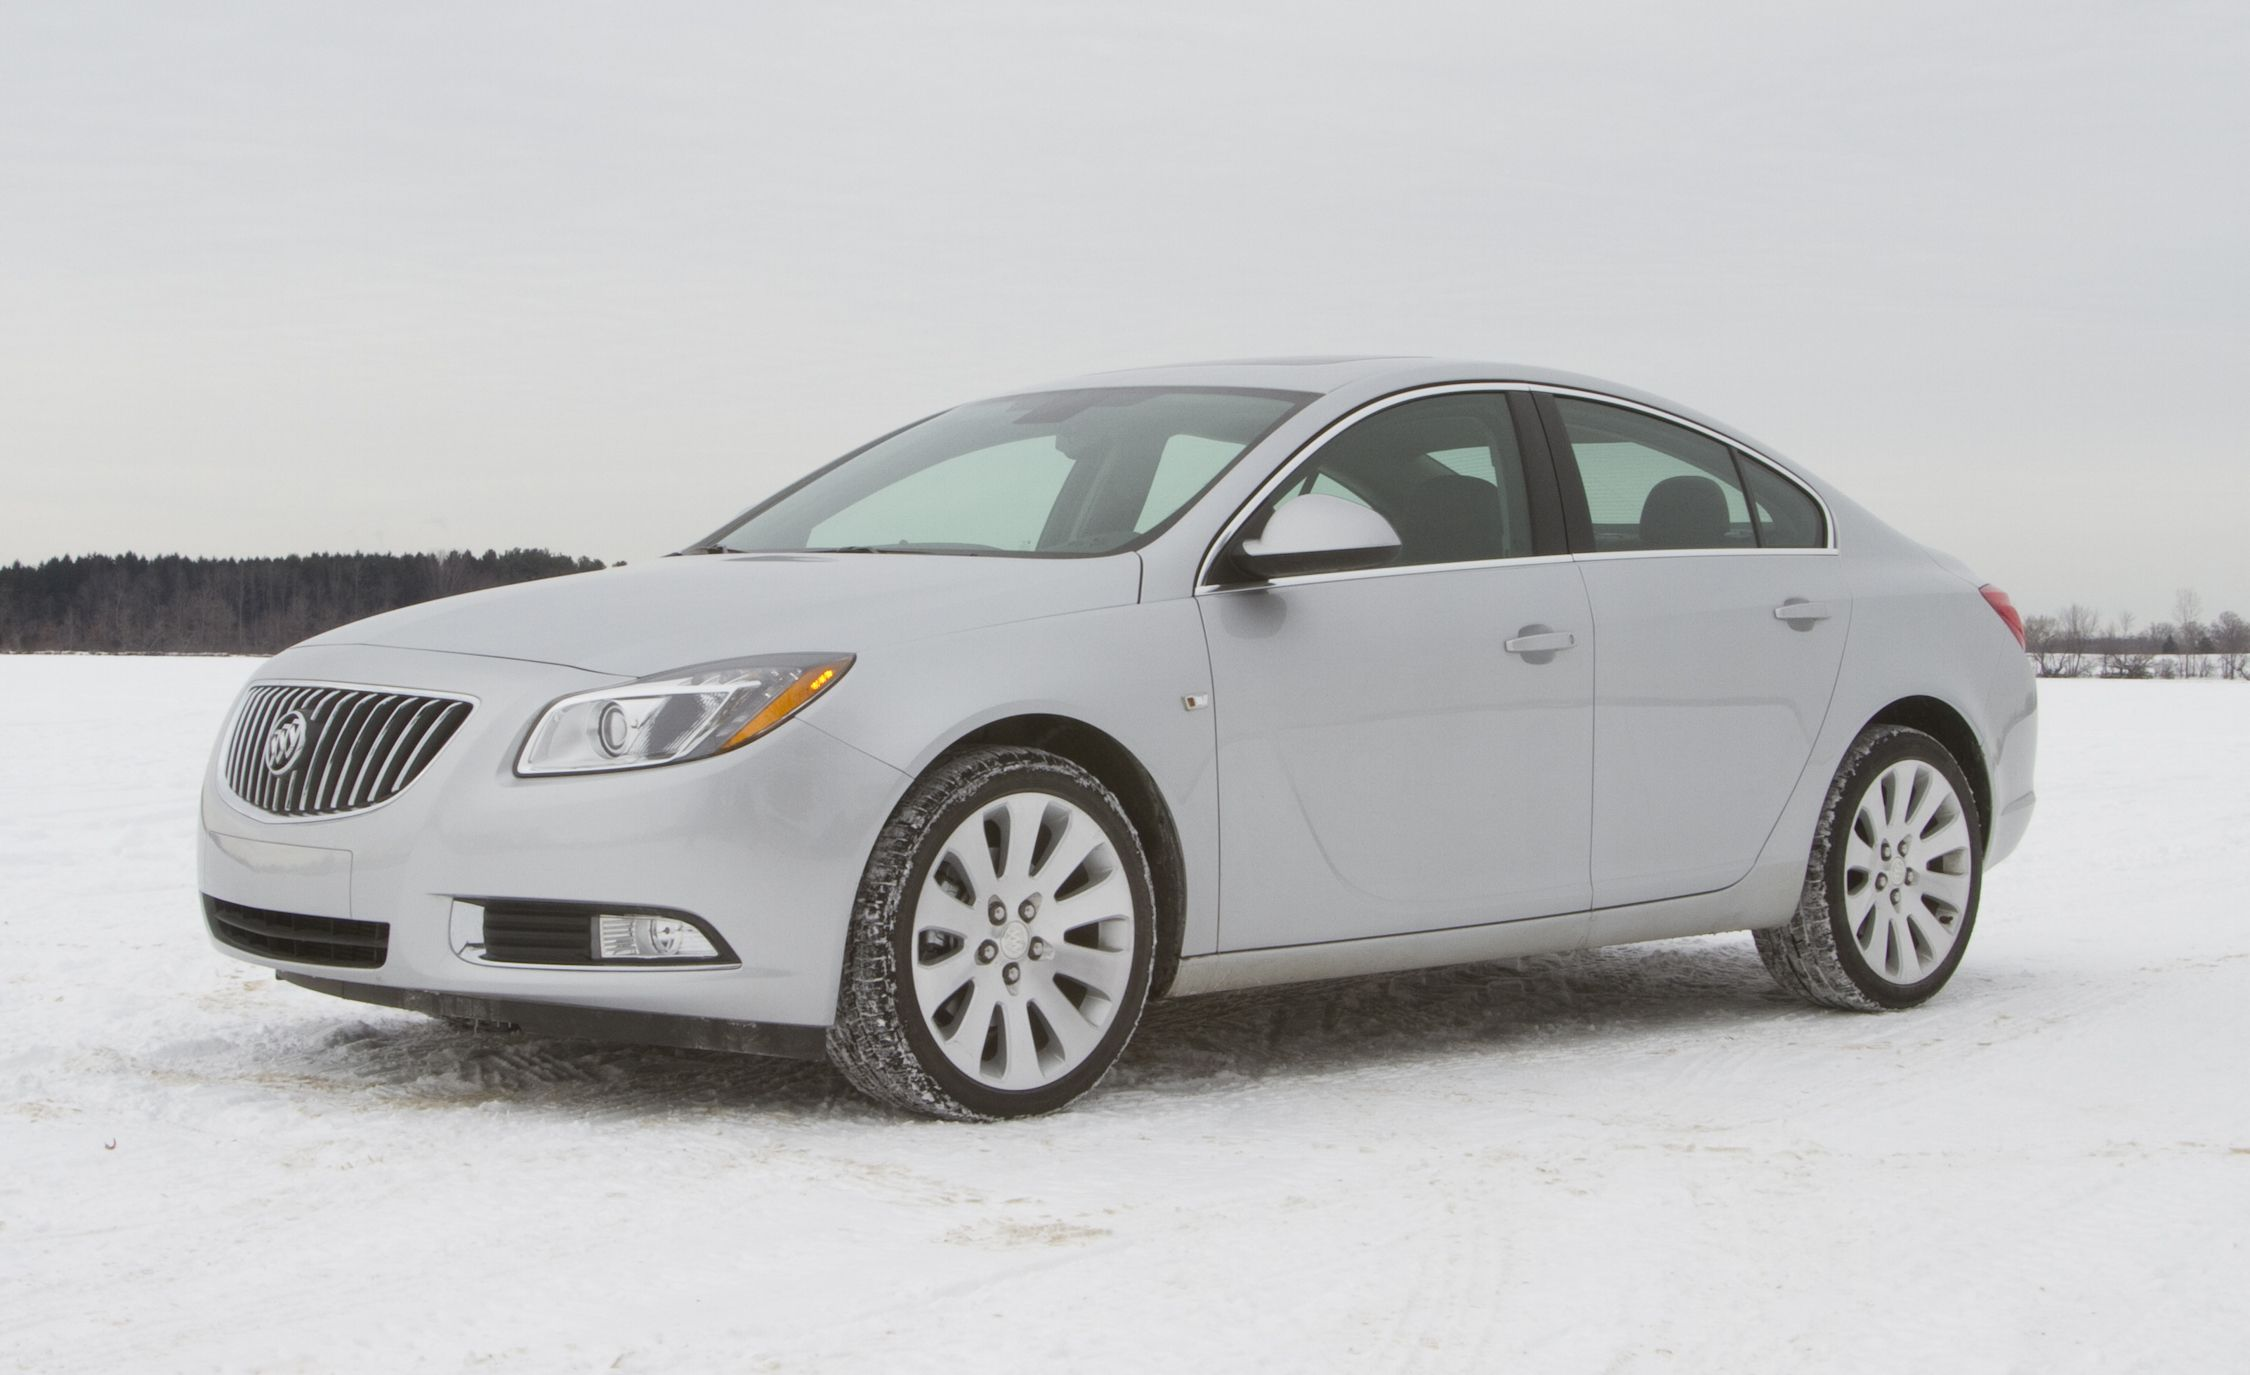 2011 buick regal turbo manual drive buick regal review 150 car rh caranddriver com 2014 buick lacrosse owners manual buick lacrosse owners manual 2015